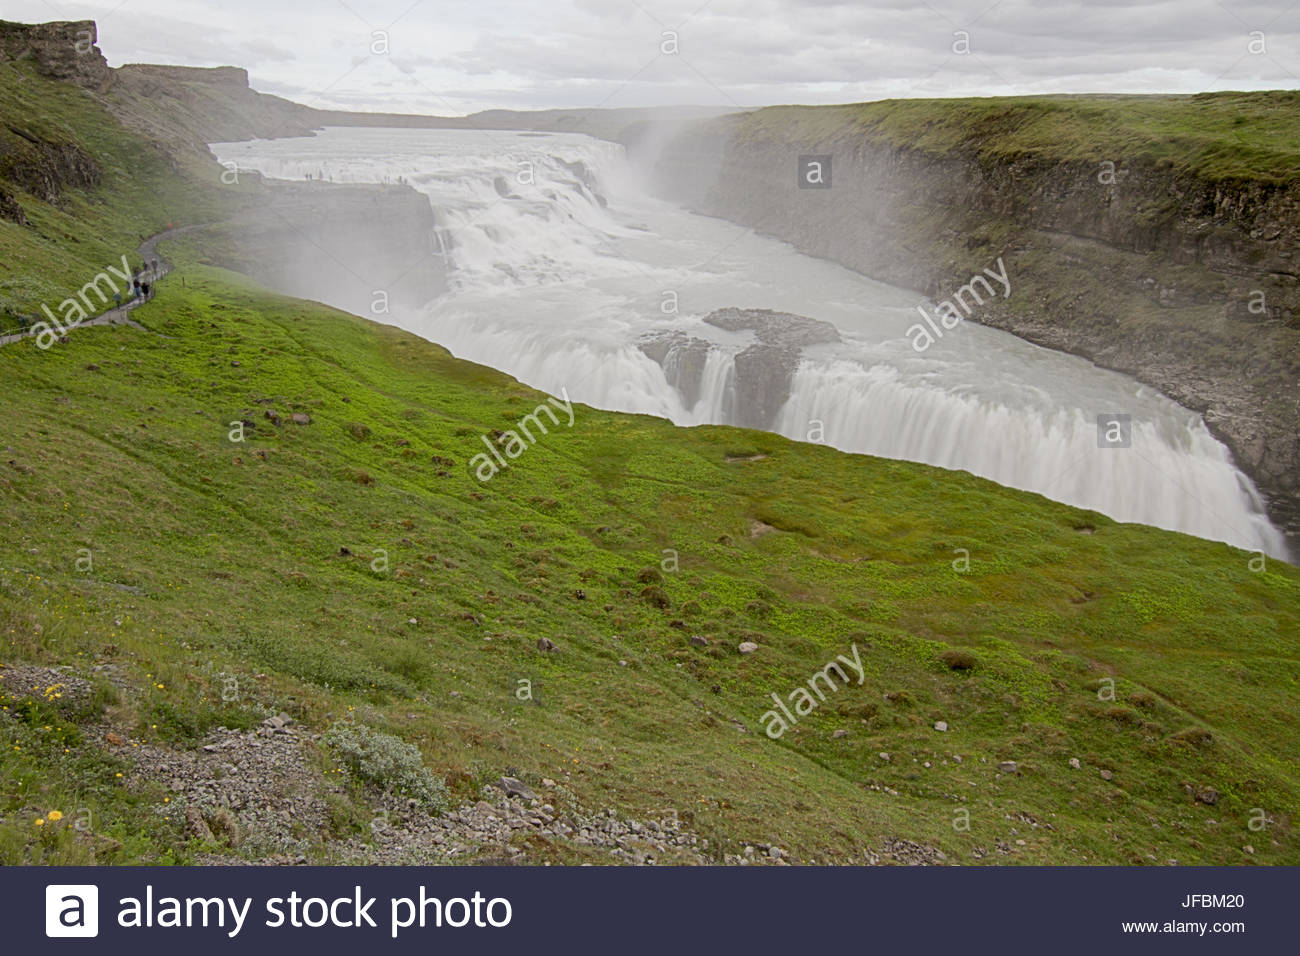 A scenic view of Gullfoss Waterfall. - Stock Image